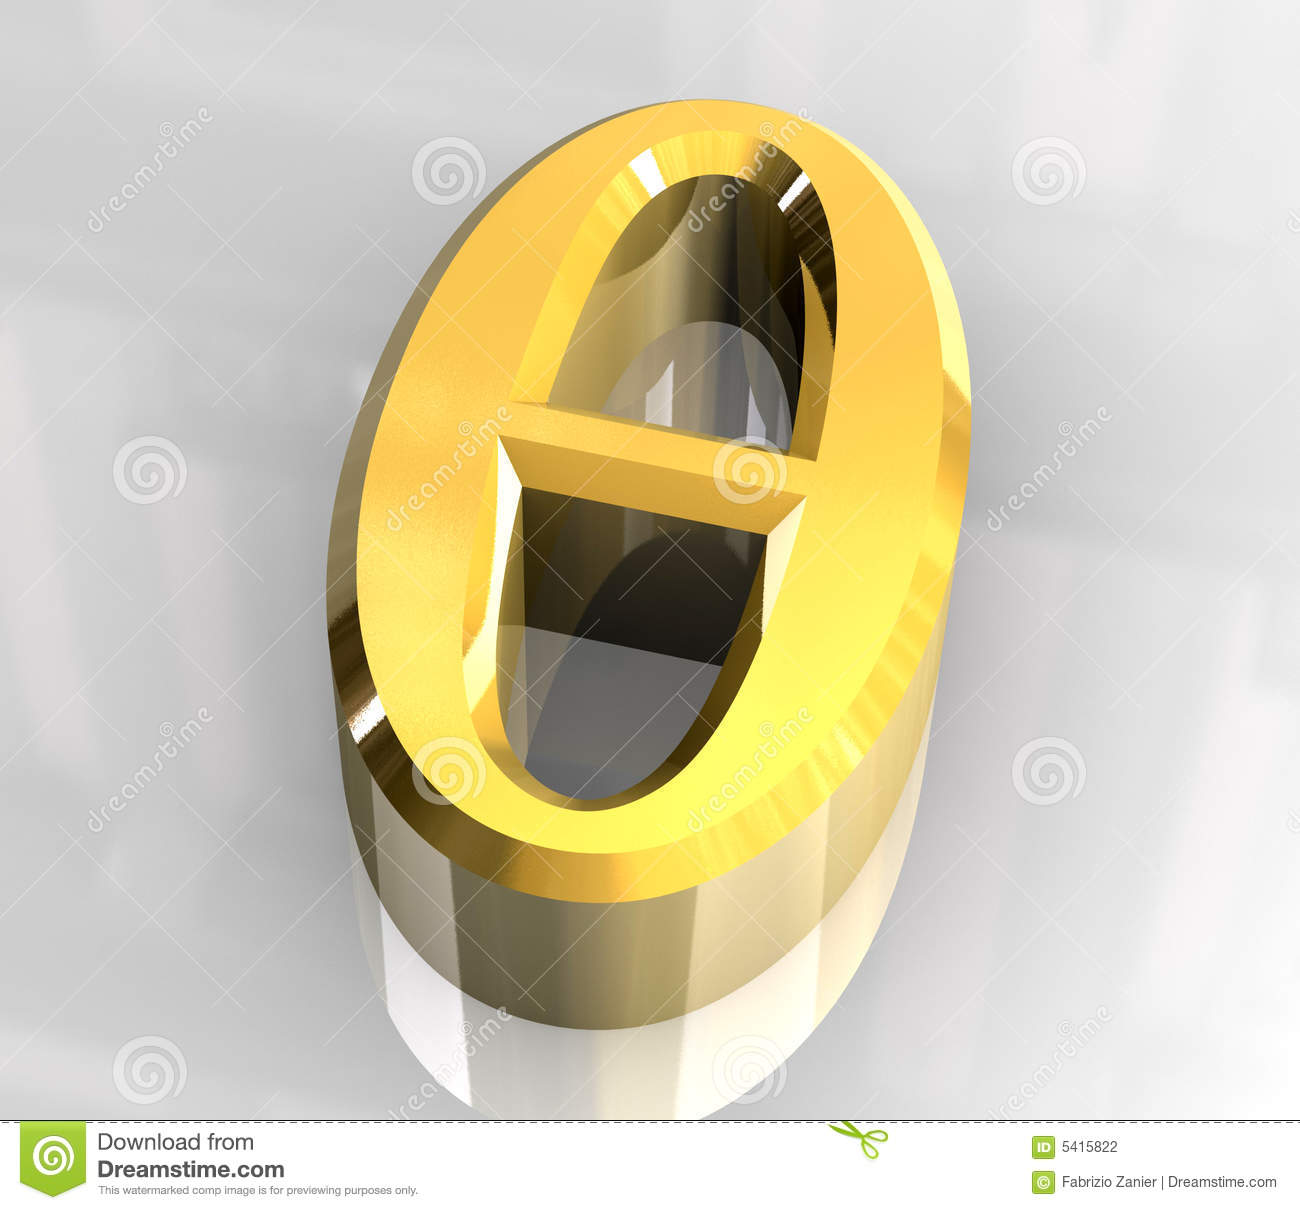 Theta symbol in gold 3d stock illustration illustration of hint theta symbol in gold 3d biocorpaavc Image collections